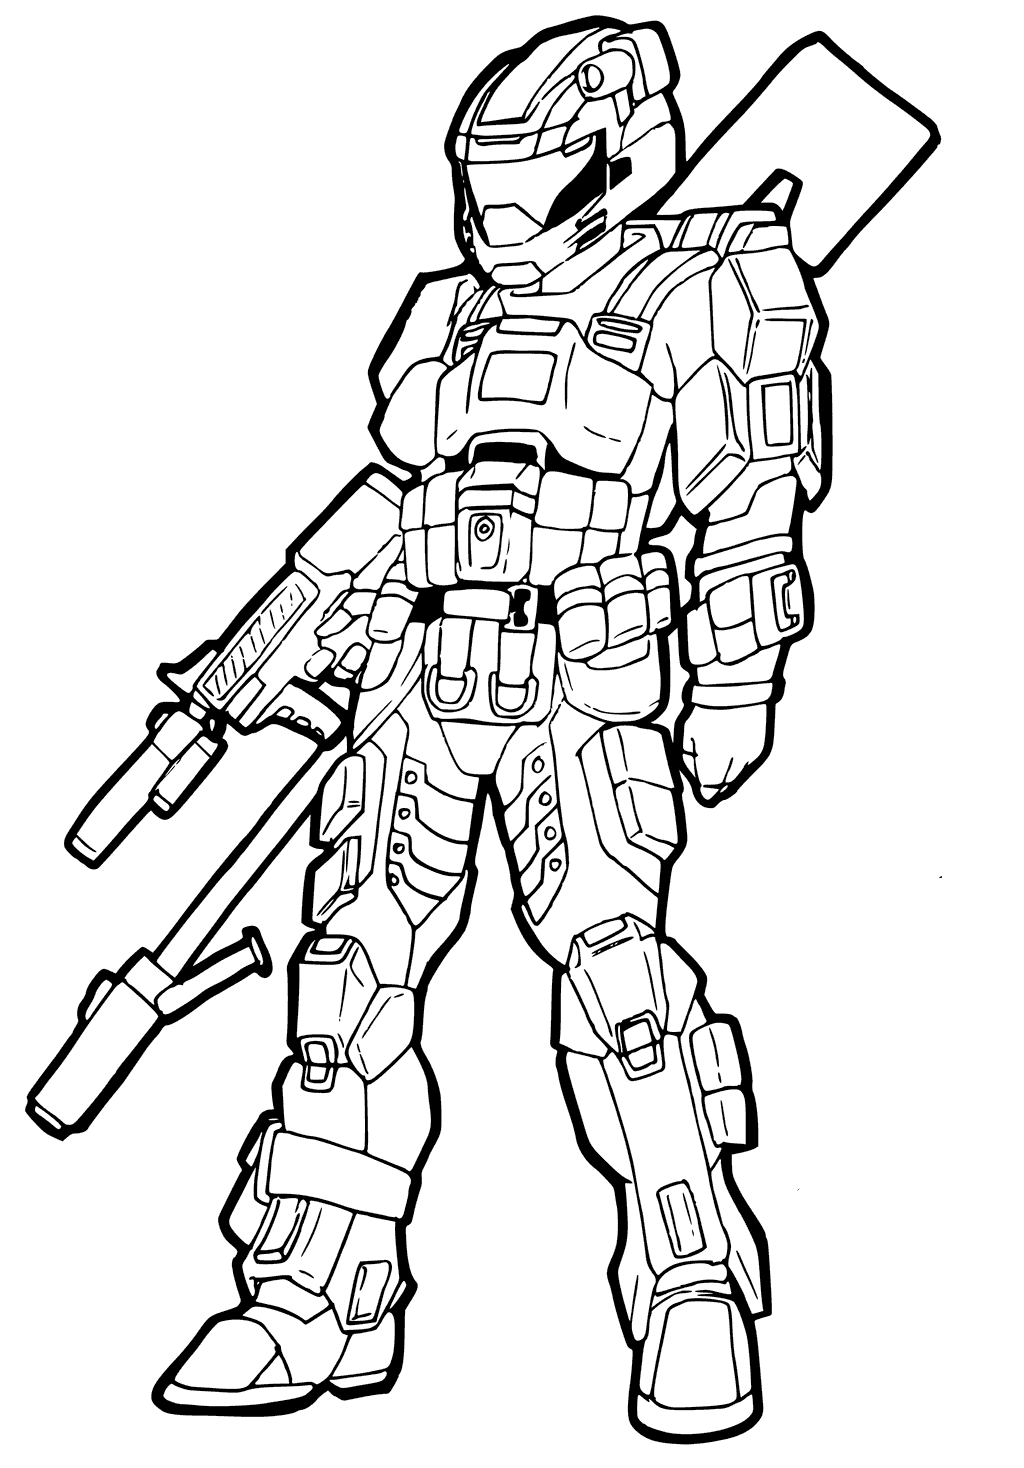 halo 5 coloring pages halo 5 coloring pages free download on clipartmag 5 pages halo coloring